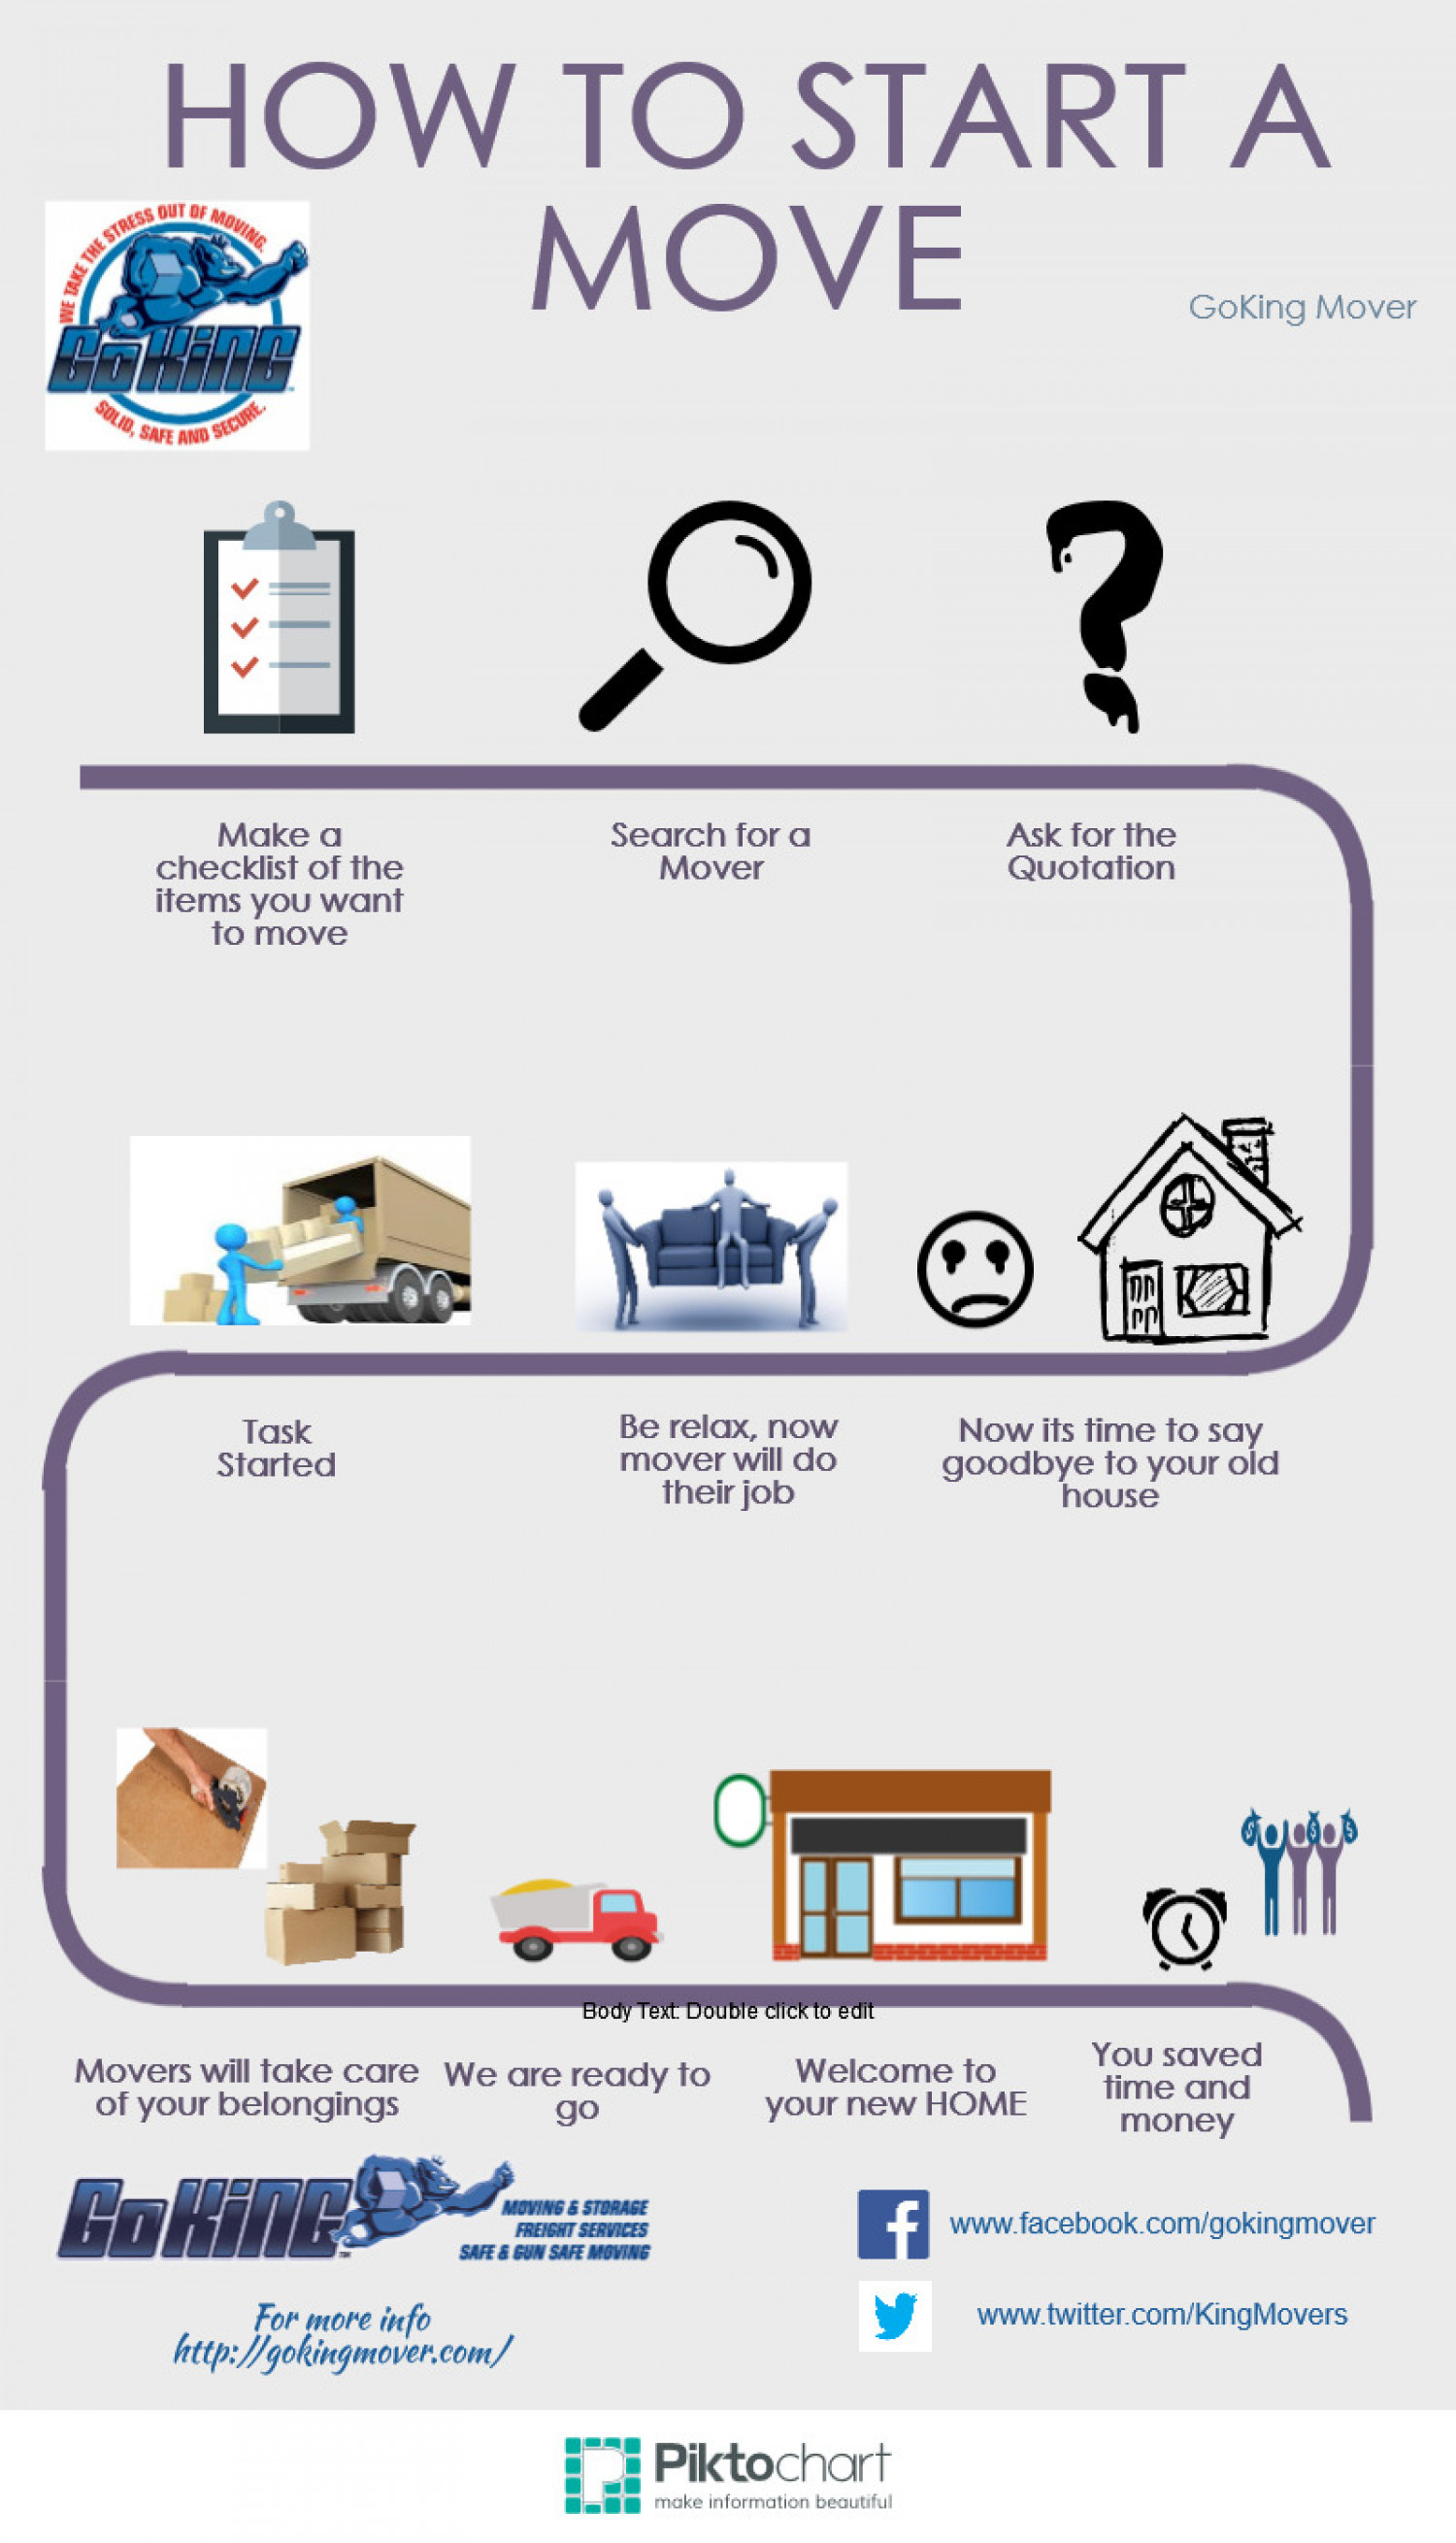 How to start a move Infographic